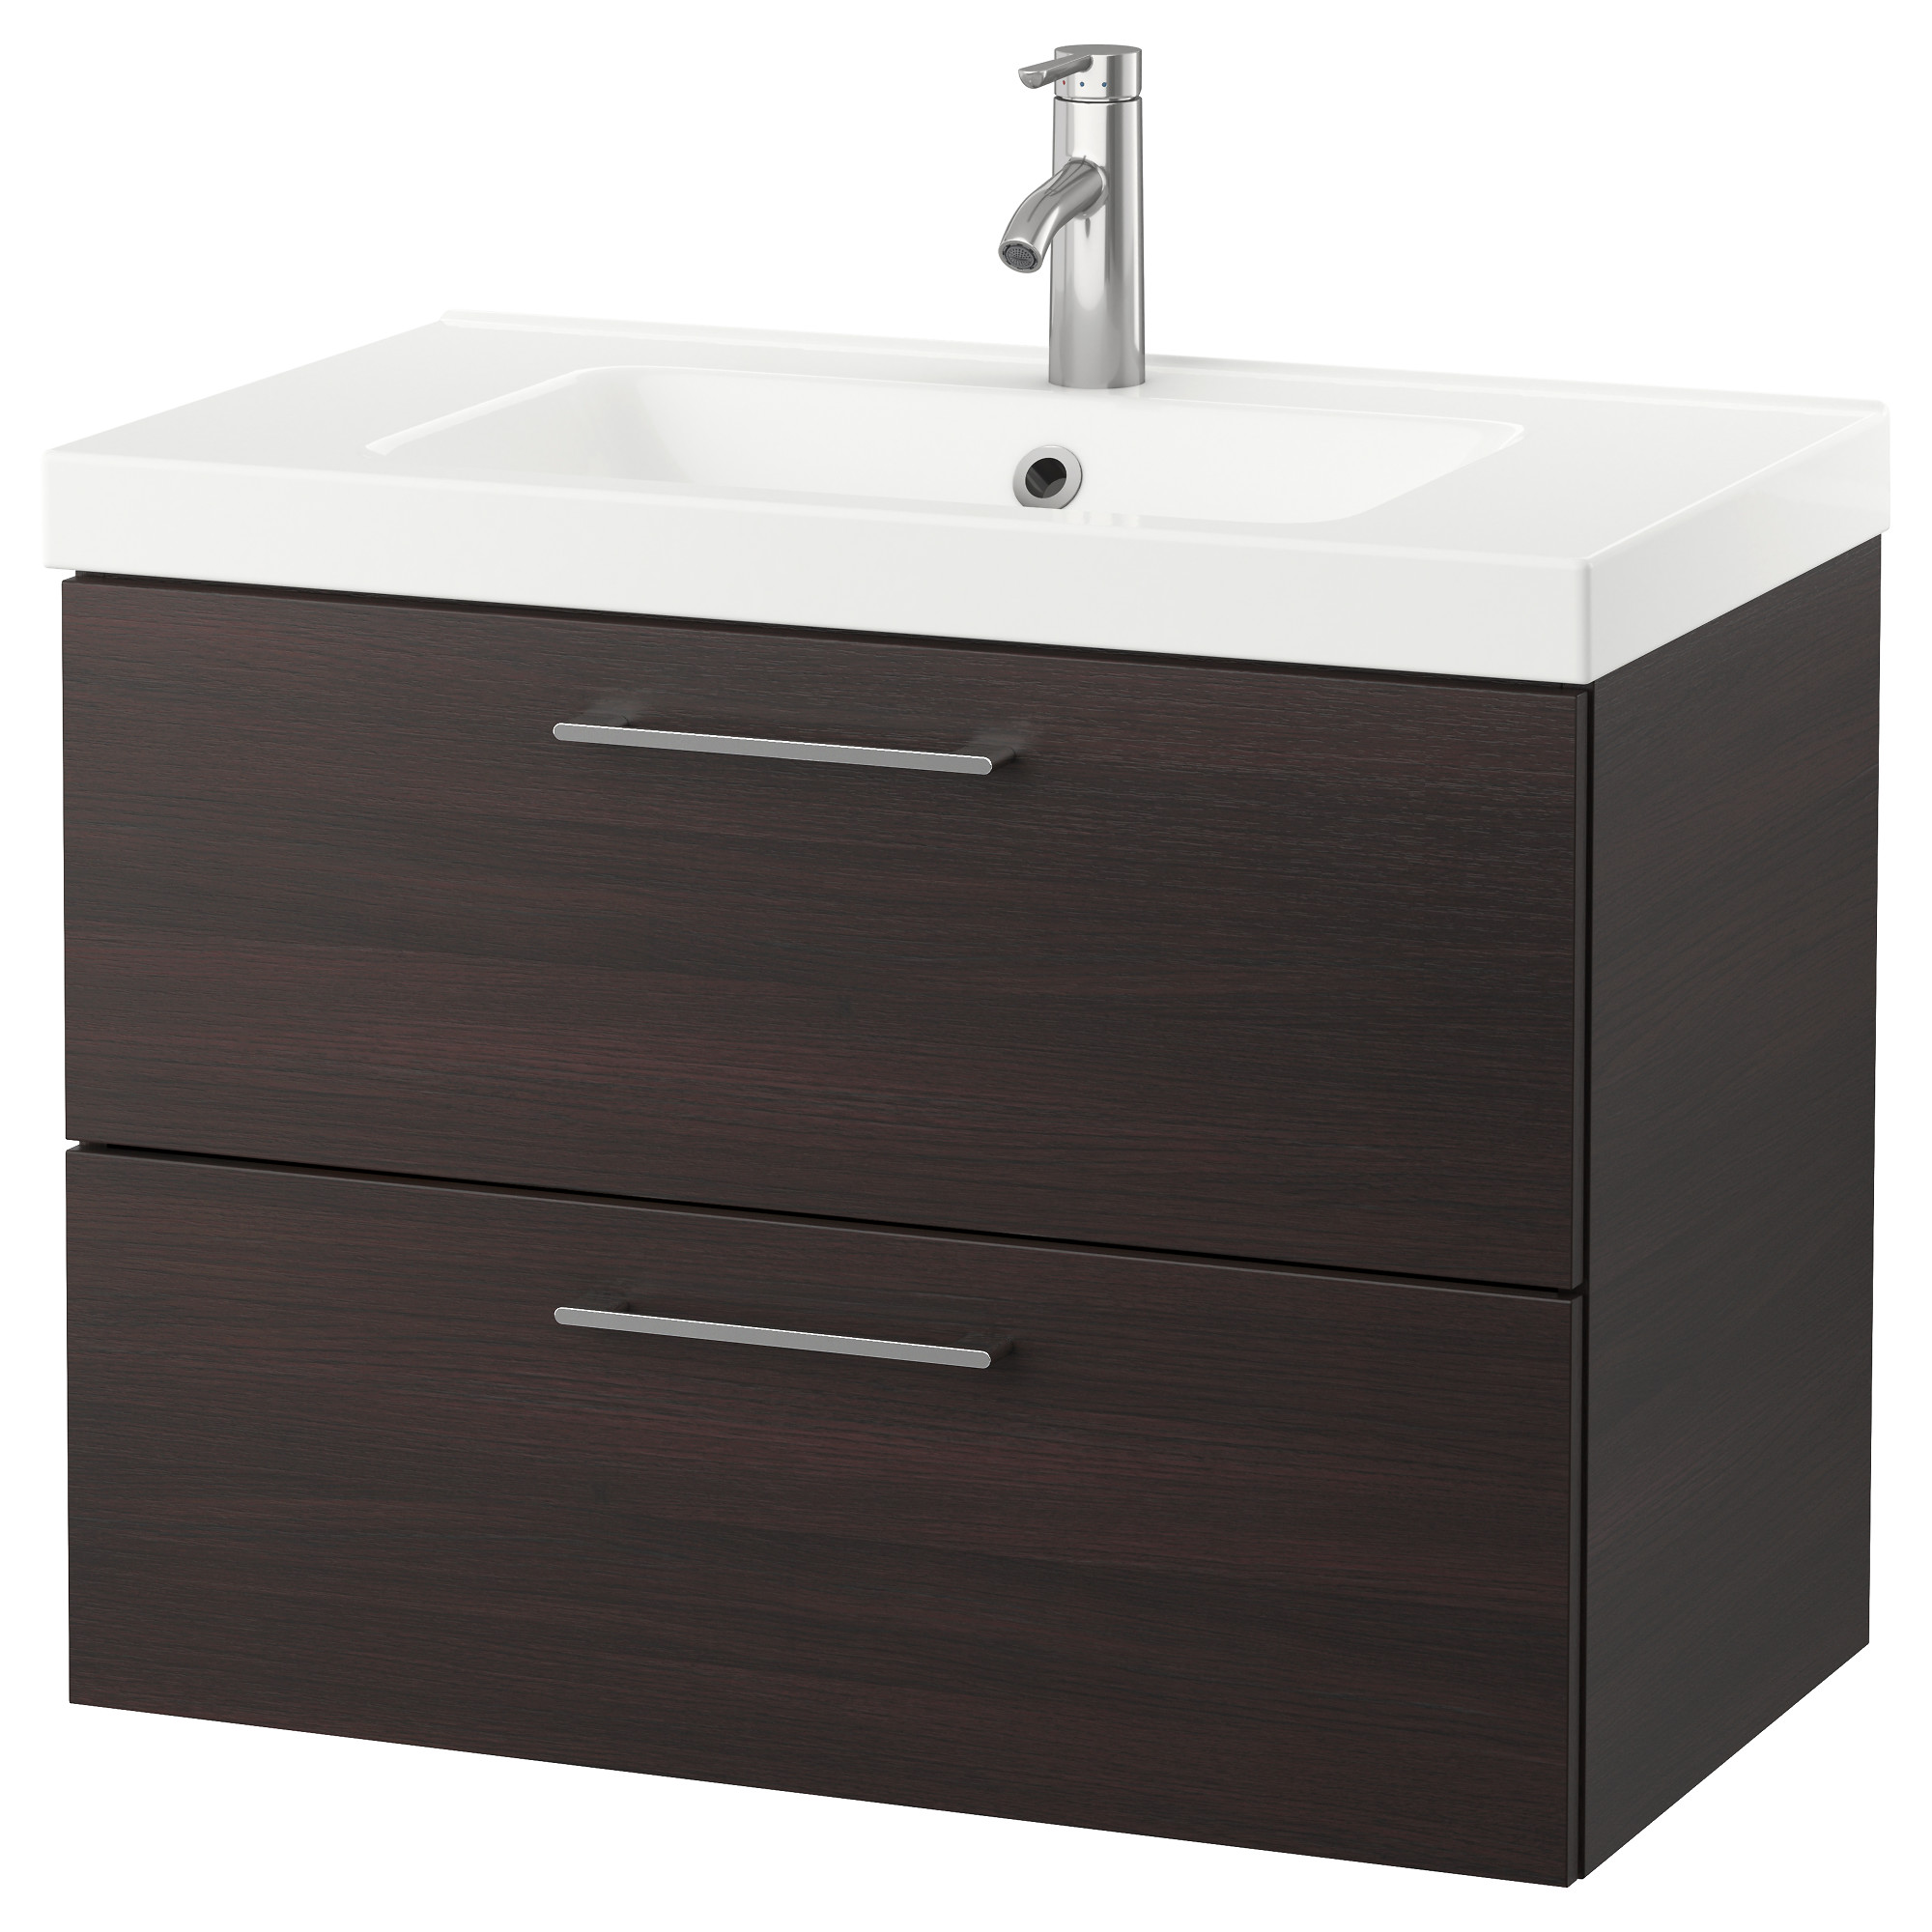 godmorgon odensvik sink cabinet with 2 drawers black brown width 32 5